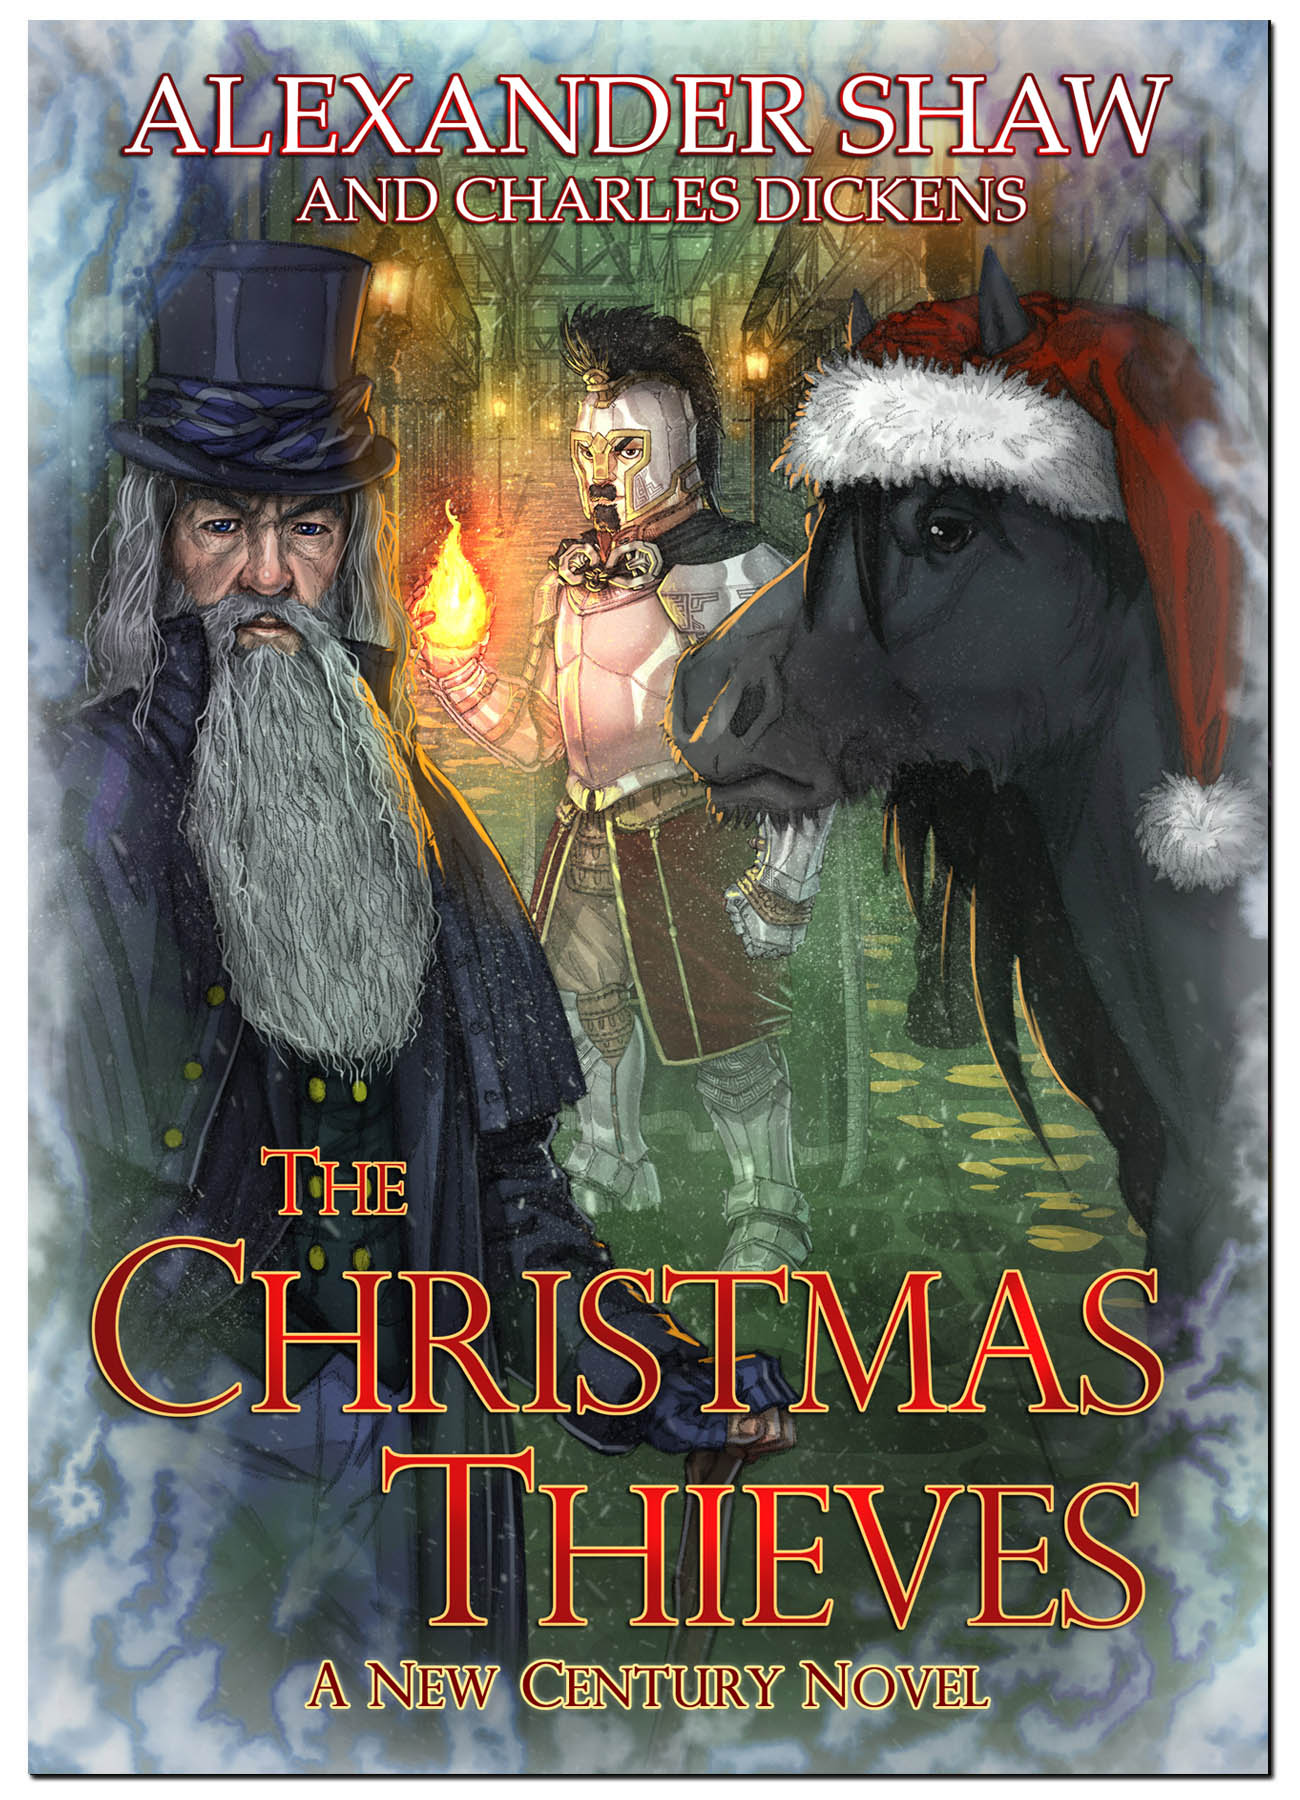 Does Everyone Deserve Redemption? - Charles Dickens' classic tale of Christmas hauntings, reimagined in a new world. It is the winter of 1882, and the wizard, Merlene, has had his eye on the Captain of the Watchmen, Ambrosius Baltus.As wrathful and mean as Ebenezer Scrooge, he is in even more of an advantageous situation to affect the people of London for good. But as Merlene's foul-mouthed horse companion The Nag warns, this armoured, firecasting duart proves to be a stubborn and dangerous choice for this Christmas Eve project, and their ethically questionable scheme may result in more harm than it does help.A novella featuring the characters of The Princess Thieves, blending Dickens' words with a new perspective.